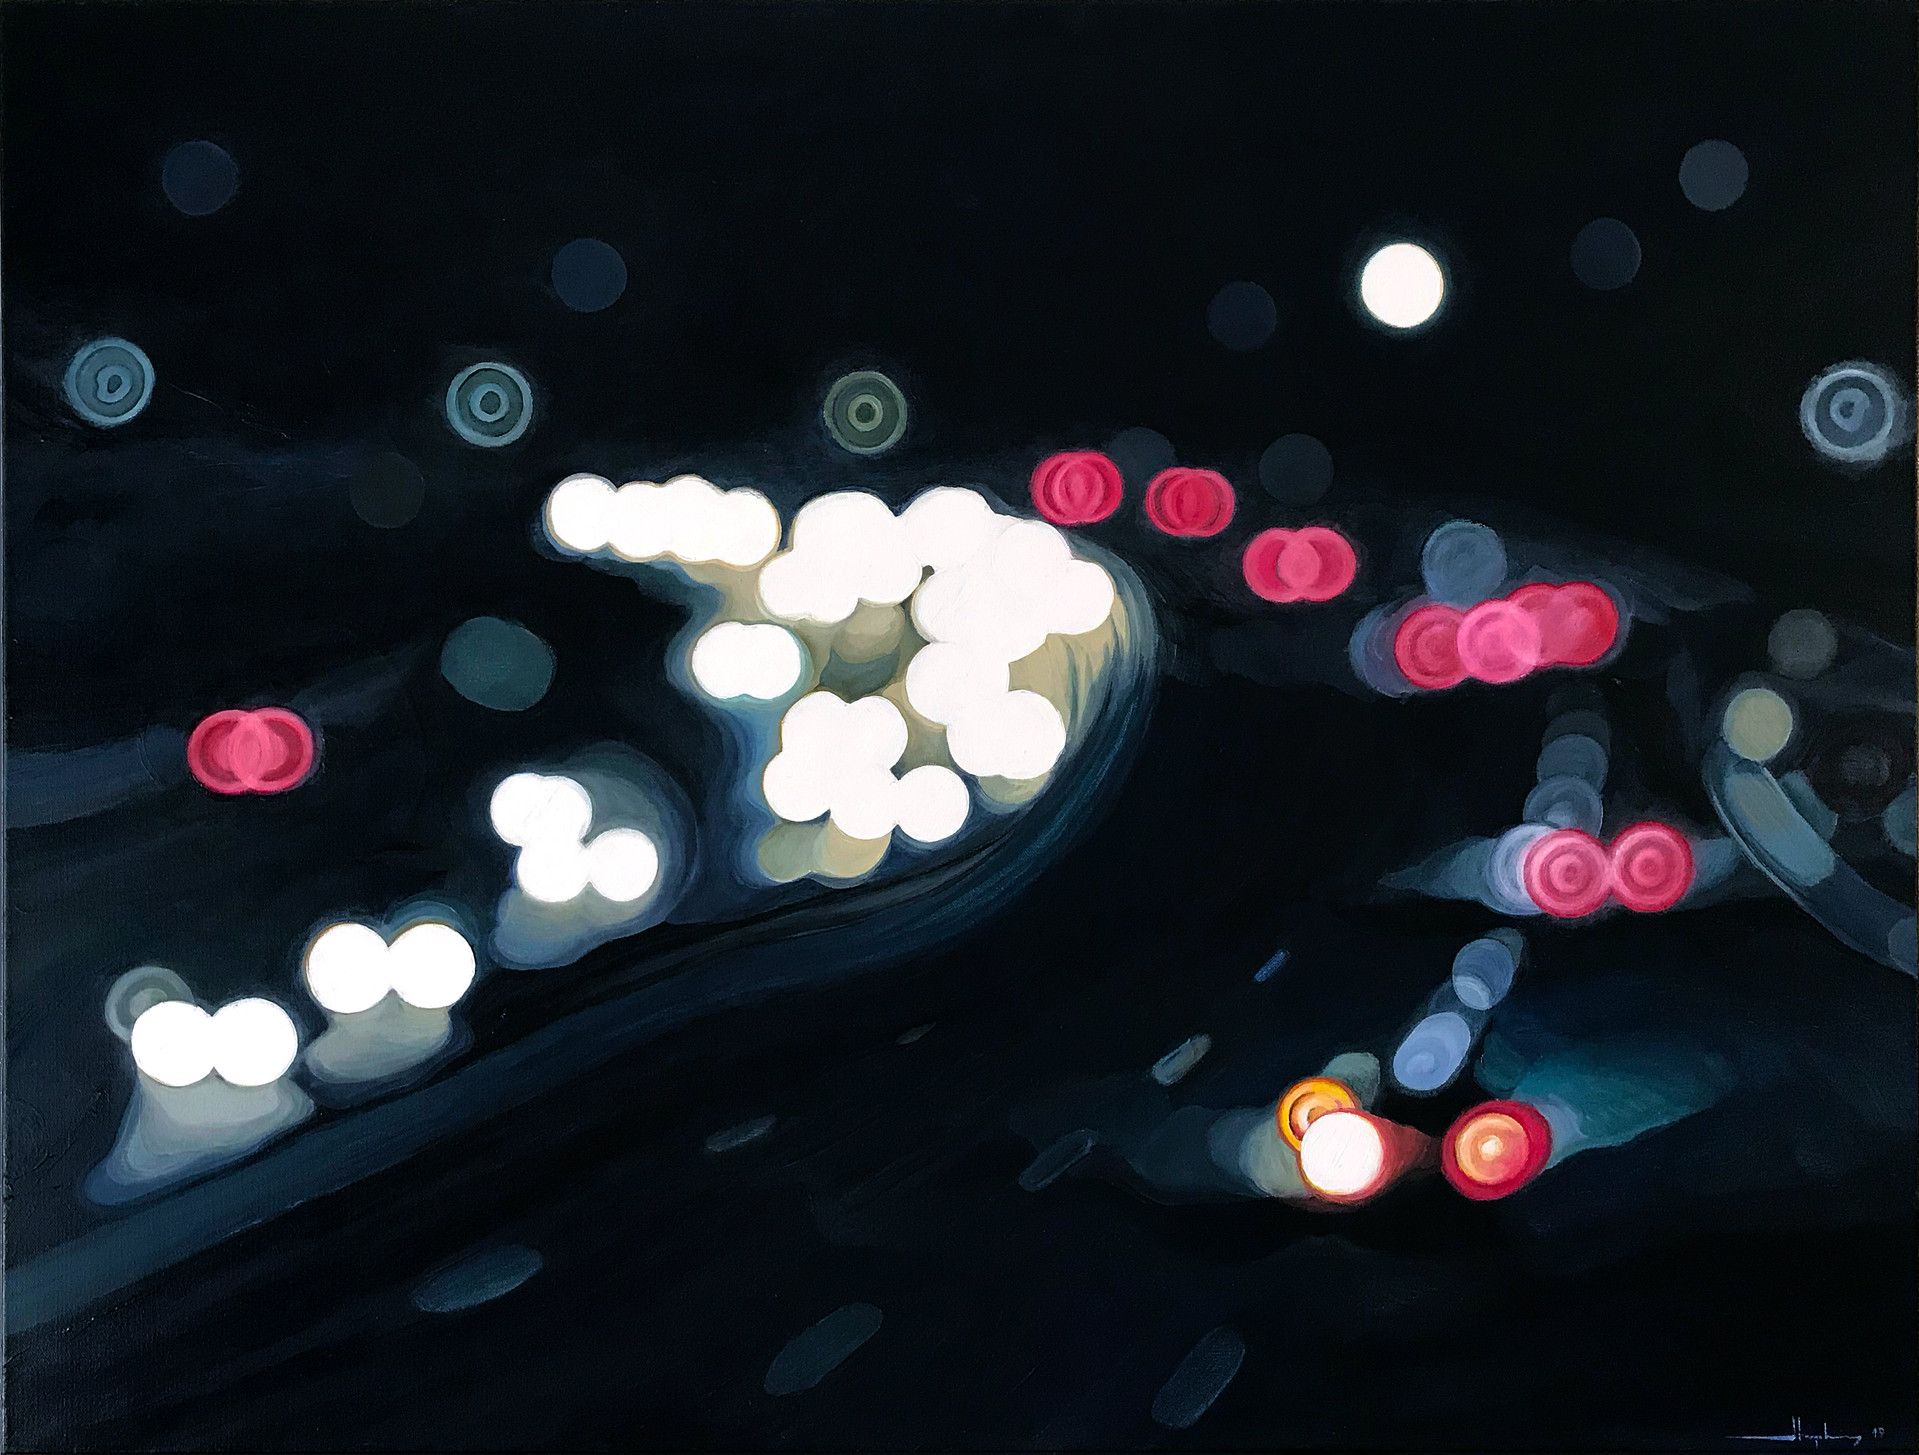 NOCTURNE #12 / Hwy 101